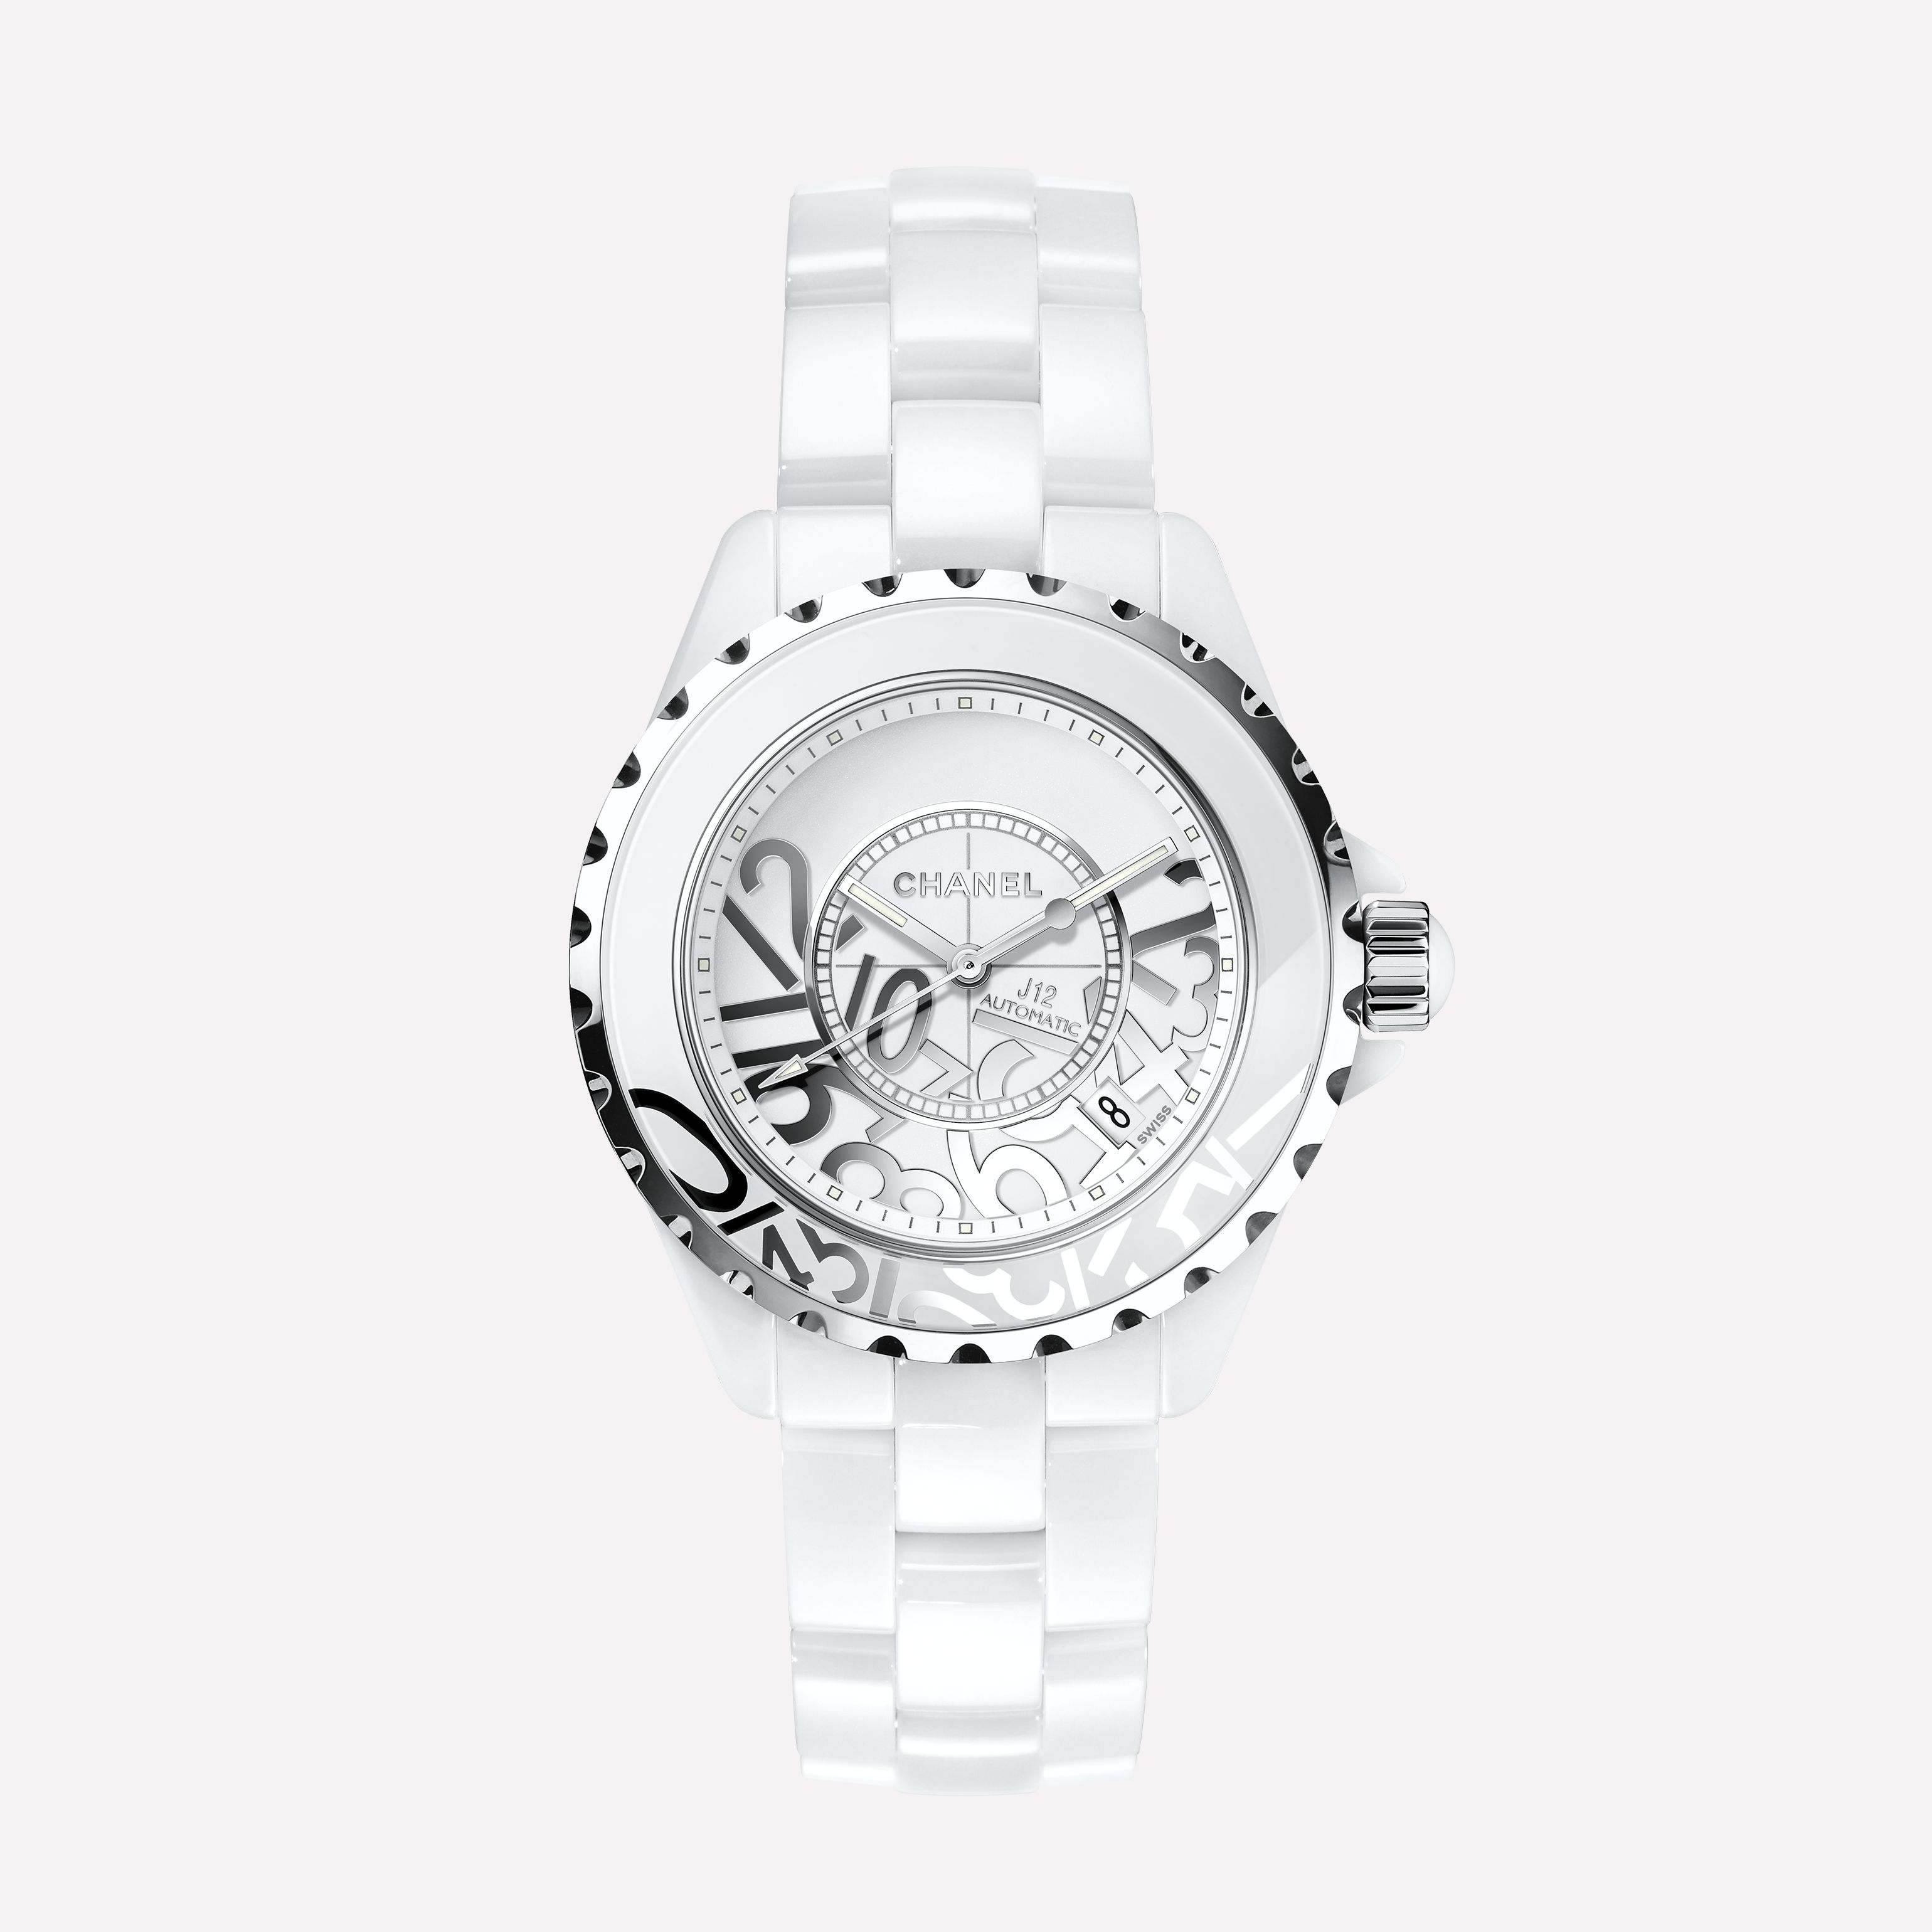 474a1eeb9d29f J12 GRAFFITI Watch White highly-resistant ceramic and steel